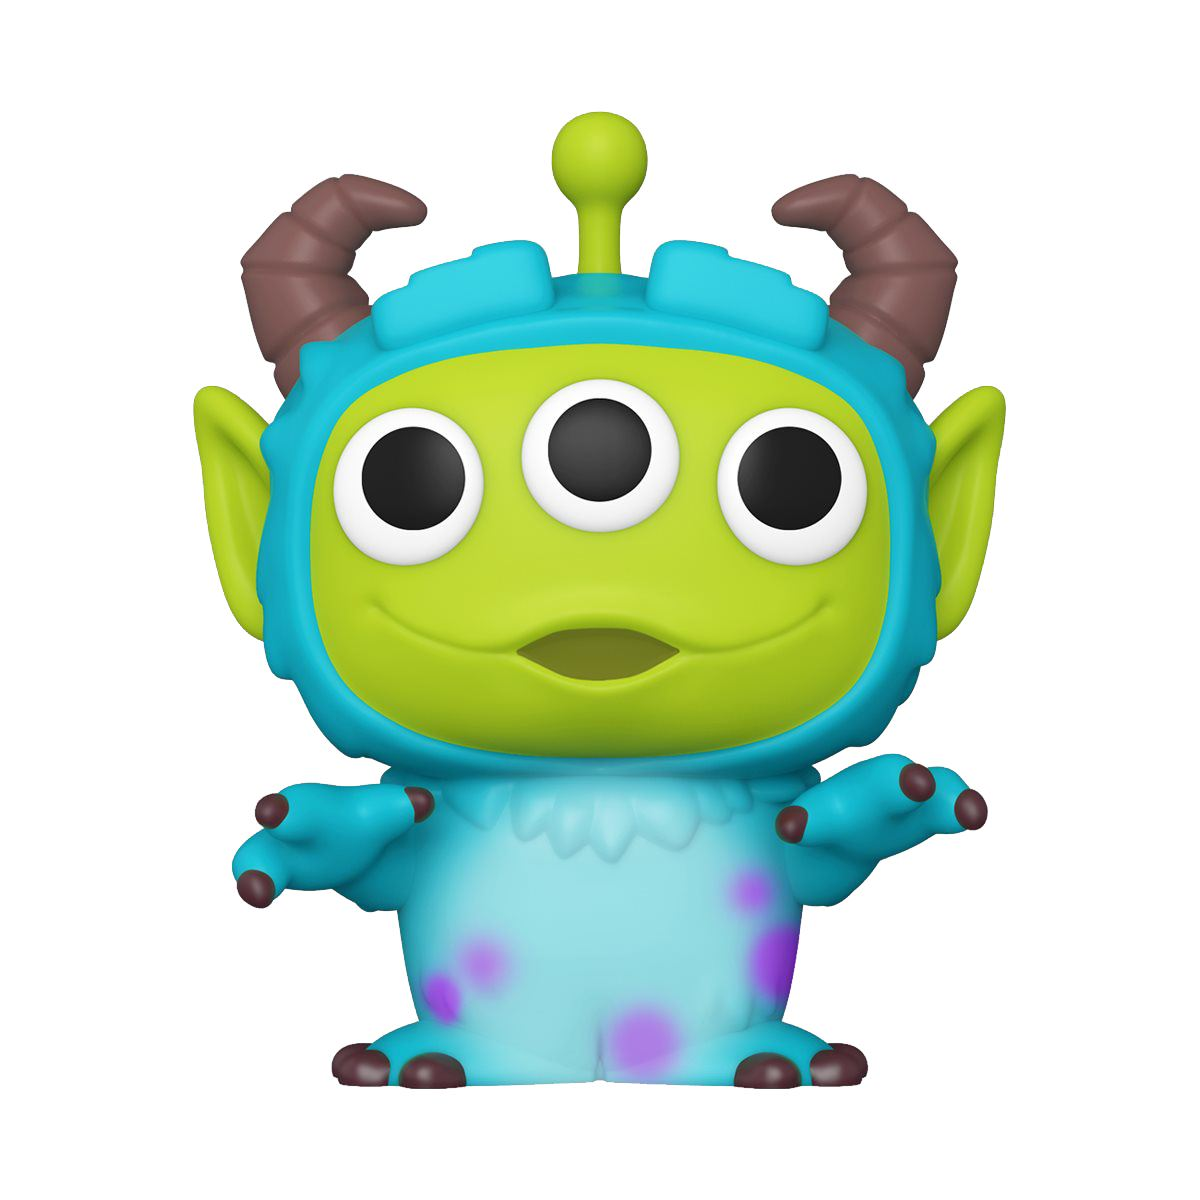 Sulley #759 Monsters Inc Pixar Alien Remix Funko Pop! Disney [PRE-ORDER] Pop! Funko